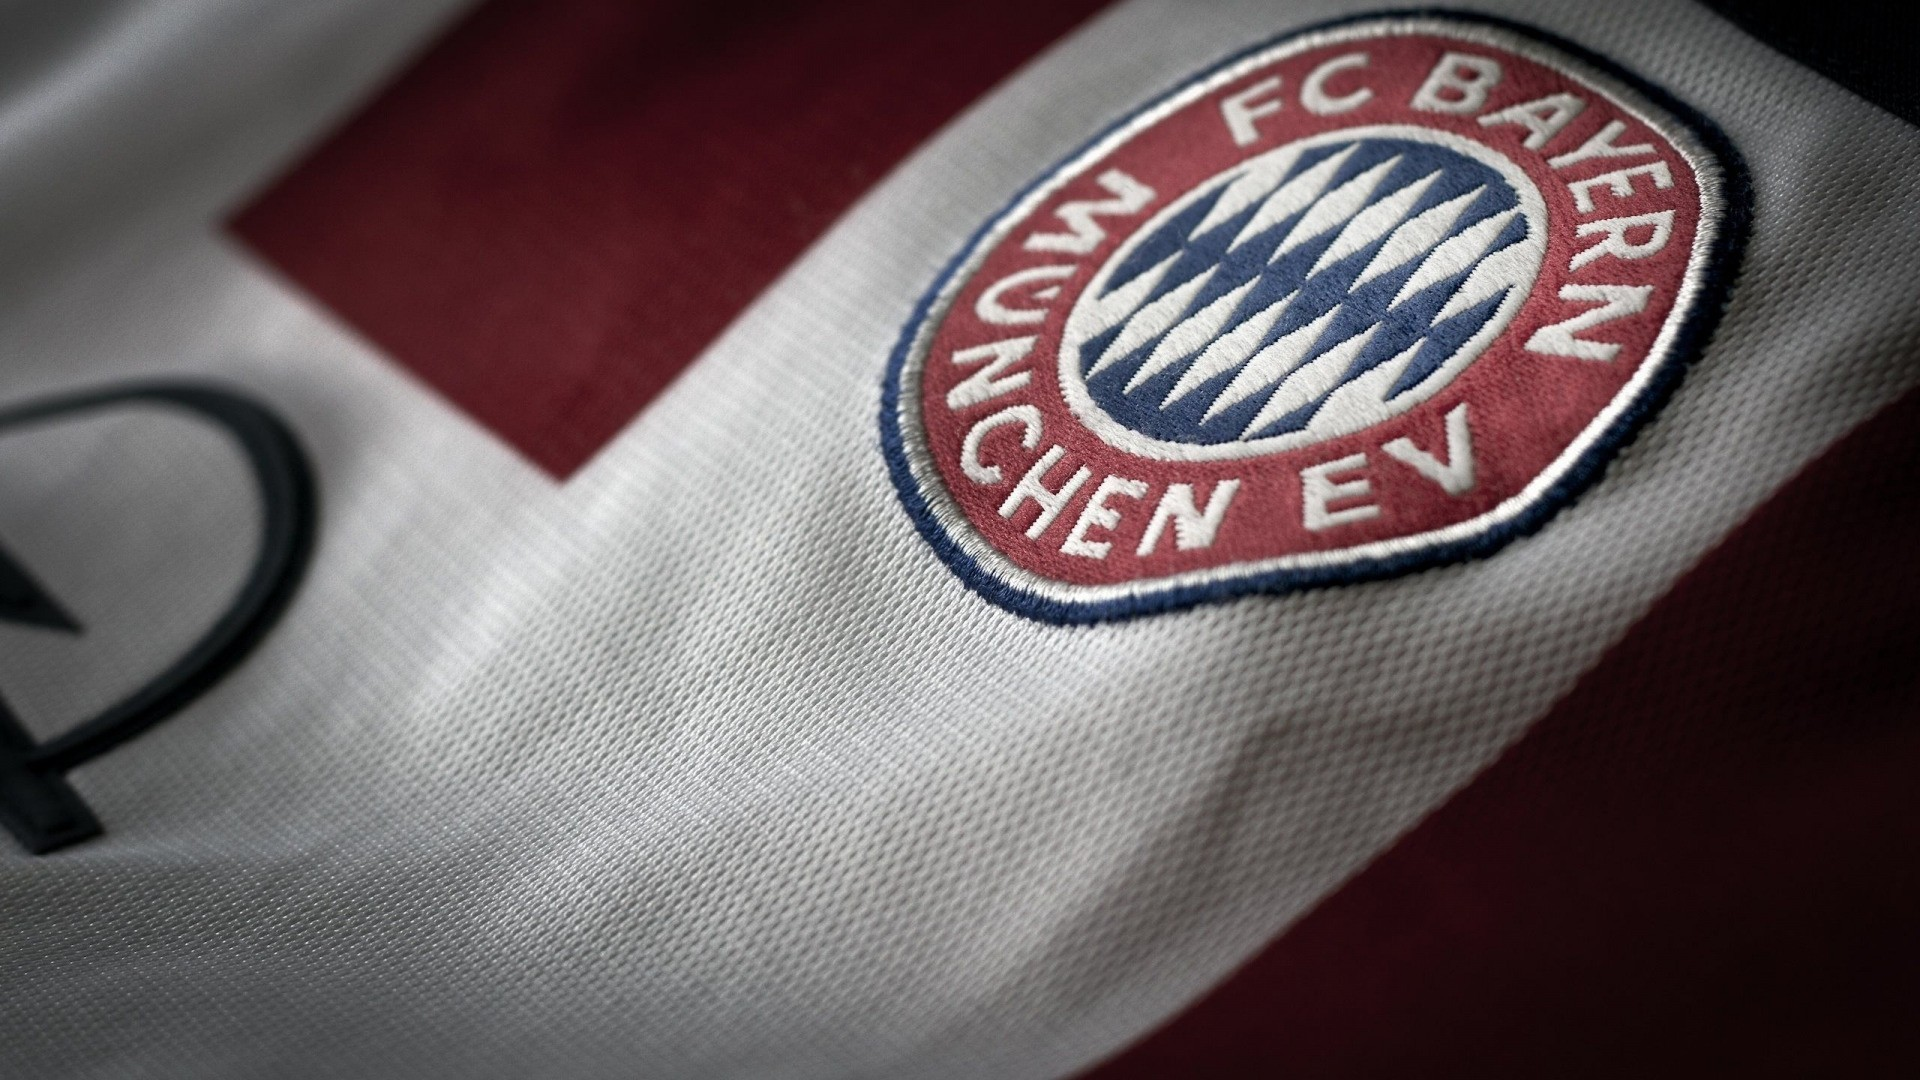 Bayern Munich wallpaper photo full hd